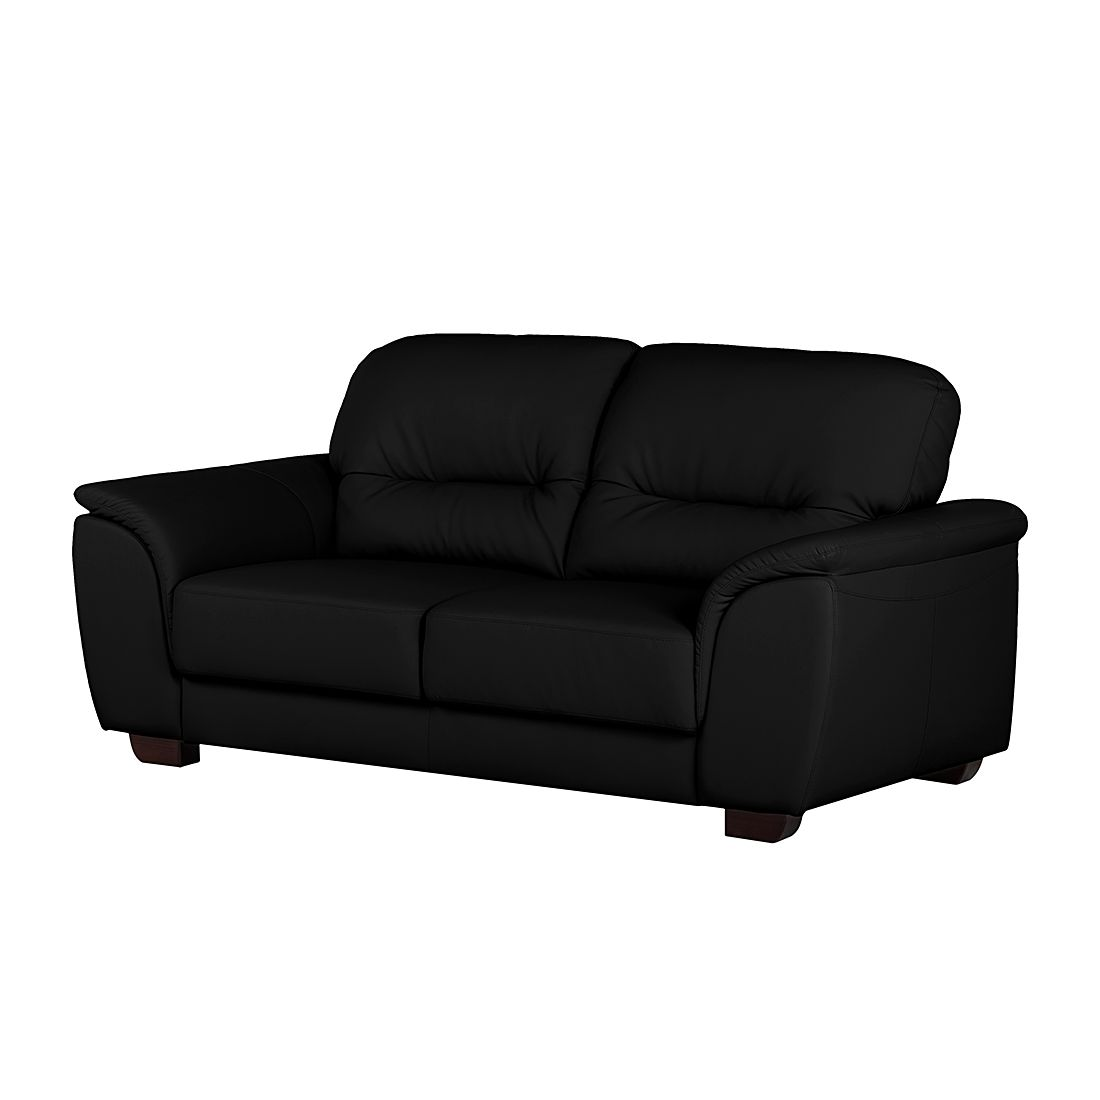 sofa rimini 3 sitzer kunstleder schwarz nuovoform online kaufen. Black Bedroom Furniture Sets. Home Design Ideas